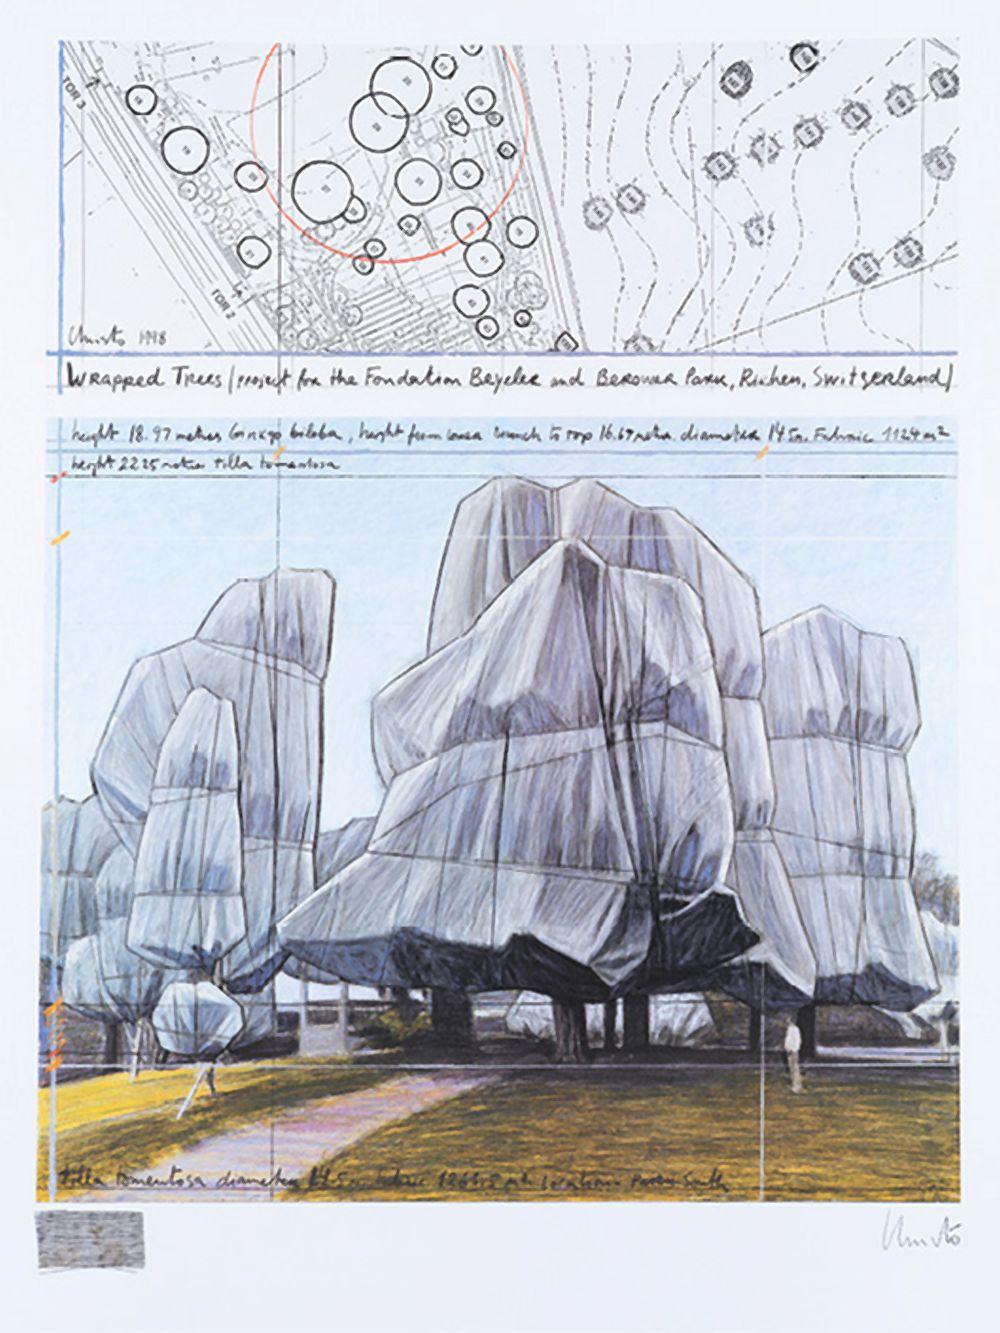 CHRISTO (1935-2020) - WRAPPED TREES, PROJECT FOR THE FONDATION BEYELER AND BEROWER PARK, 1998